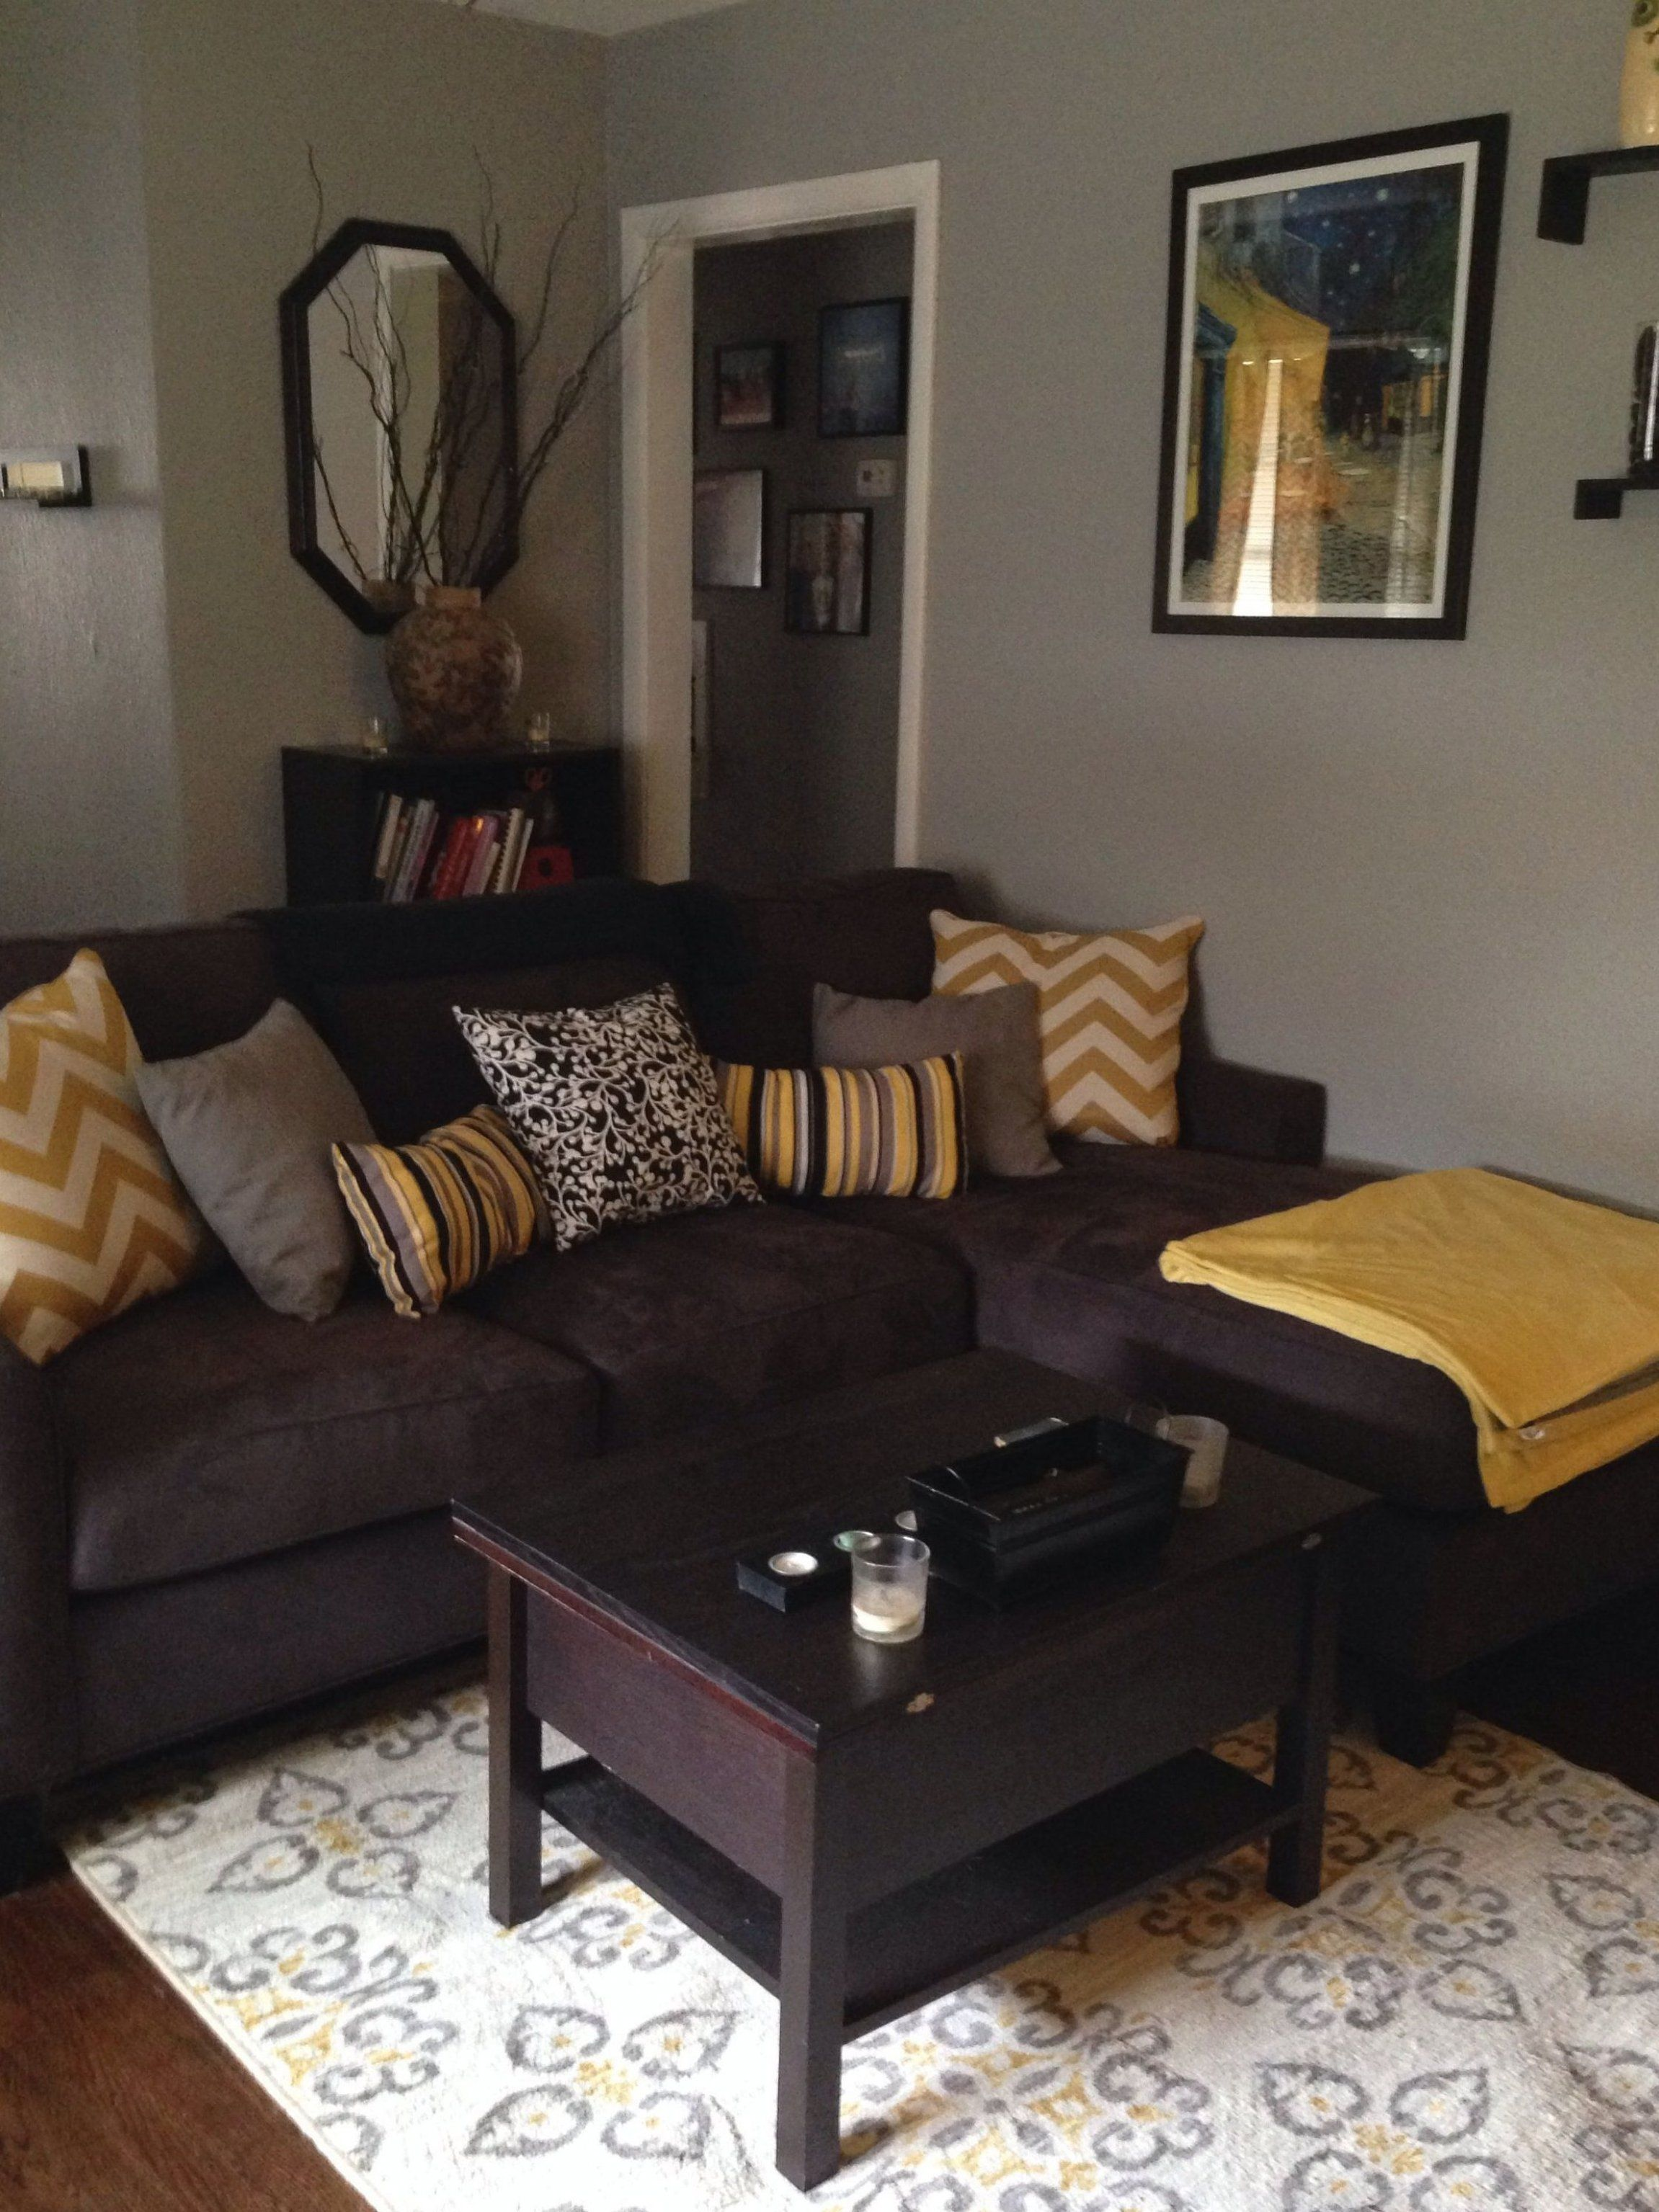 Living Room Ideas With Brown Couch 2019 Living Room Ideas With Brown Couch Living Room Idea In 2020 Brown Living Room Decor Brown Sofa Living Room Yellow Living Room